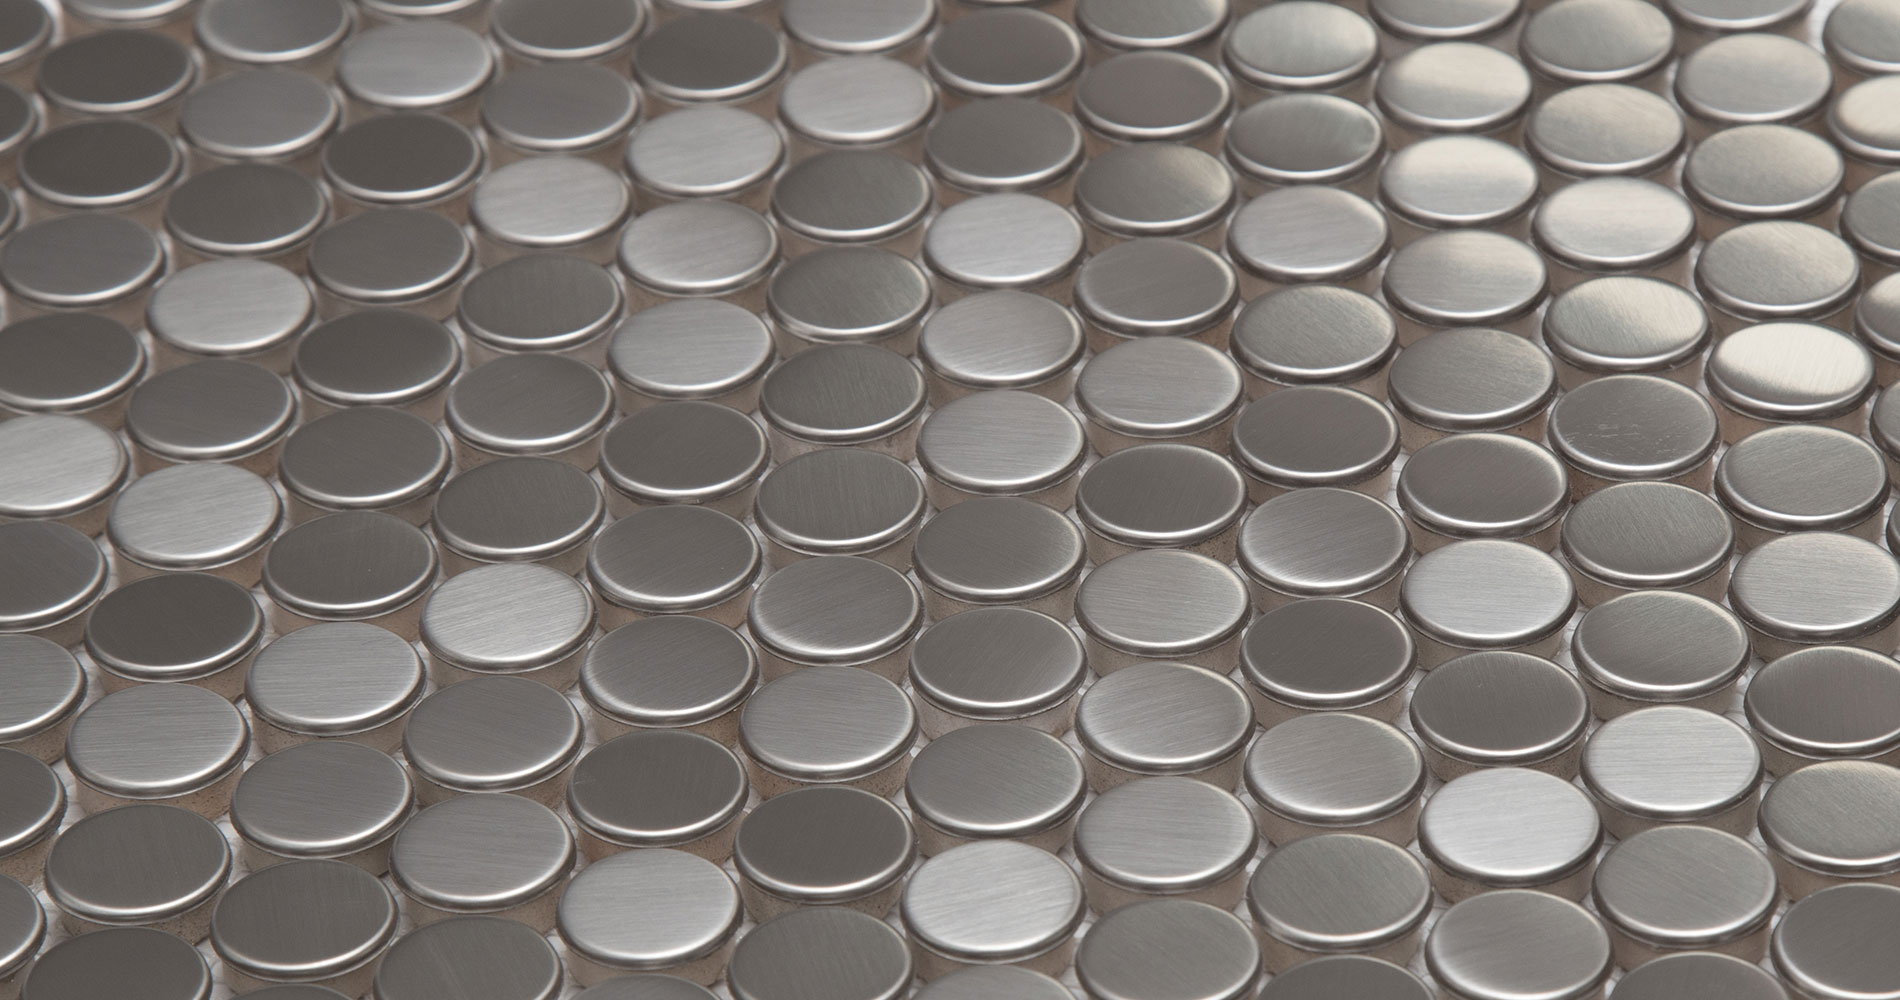 Century-Mosaic-Stainless-Steel-Penny-Round-Mosaic-Tile-2